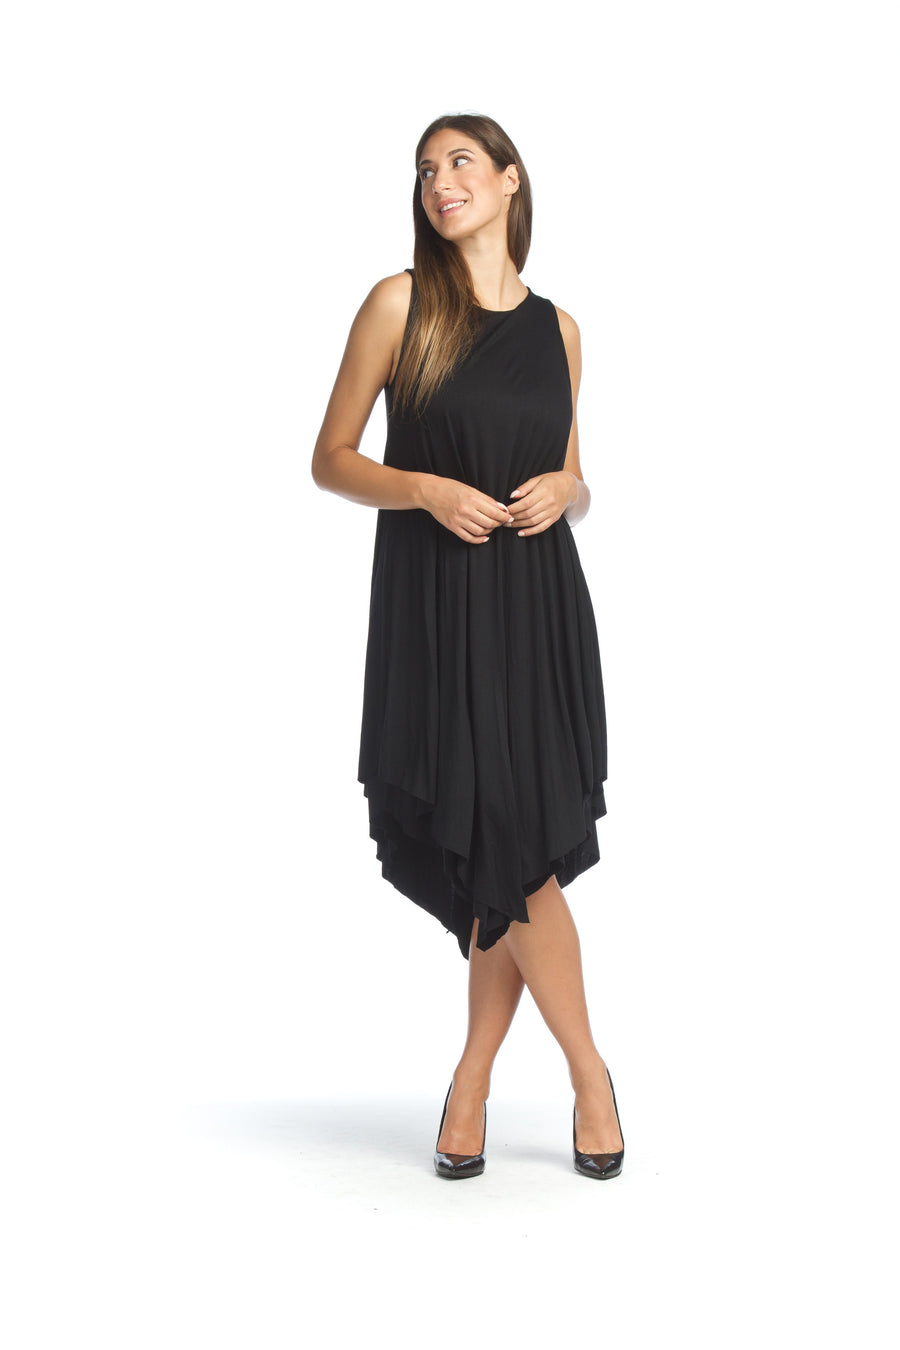 Papillon PD-8639 Jersey Layered Maxi Dress - Black